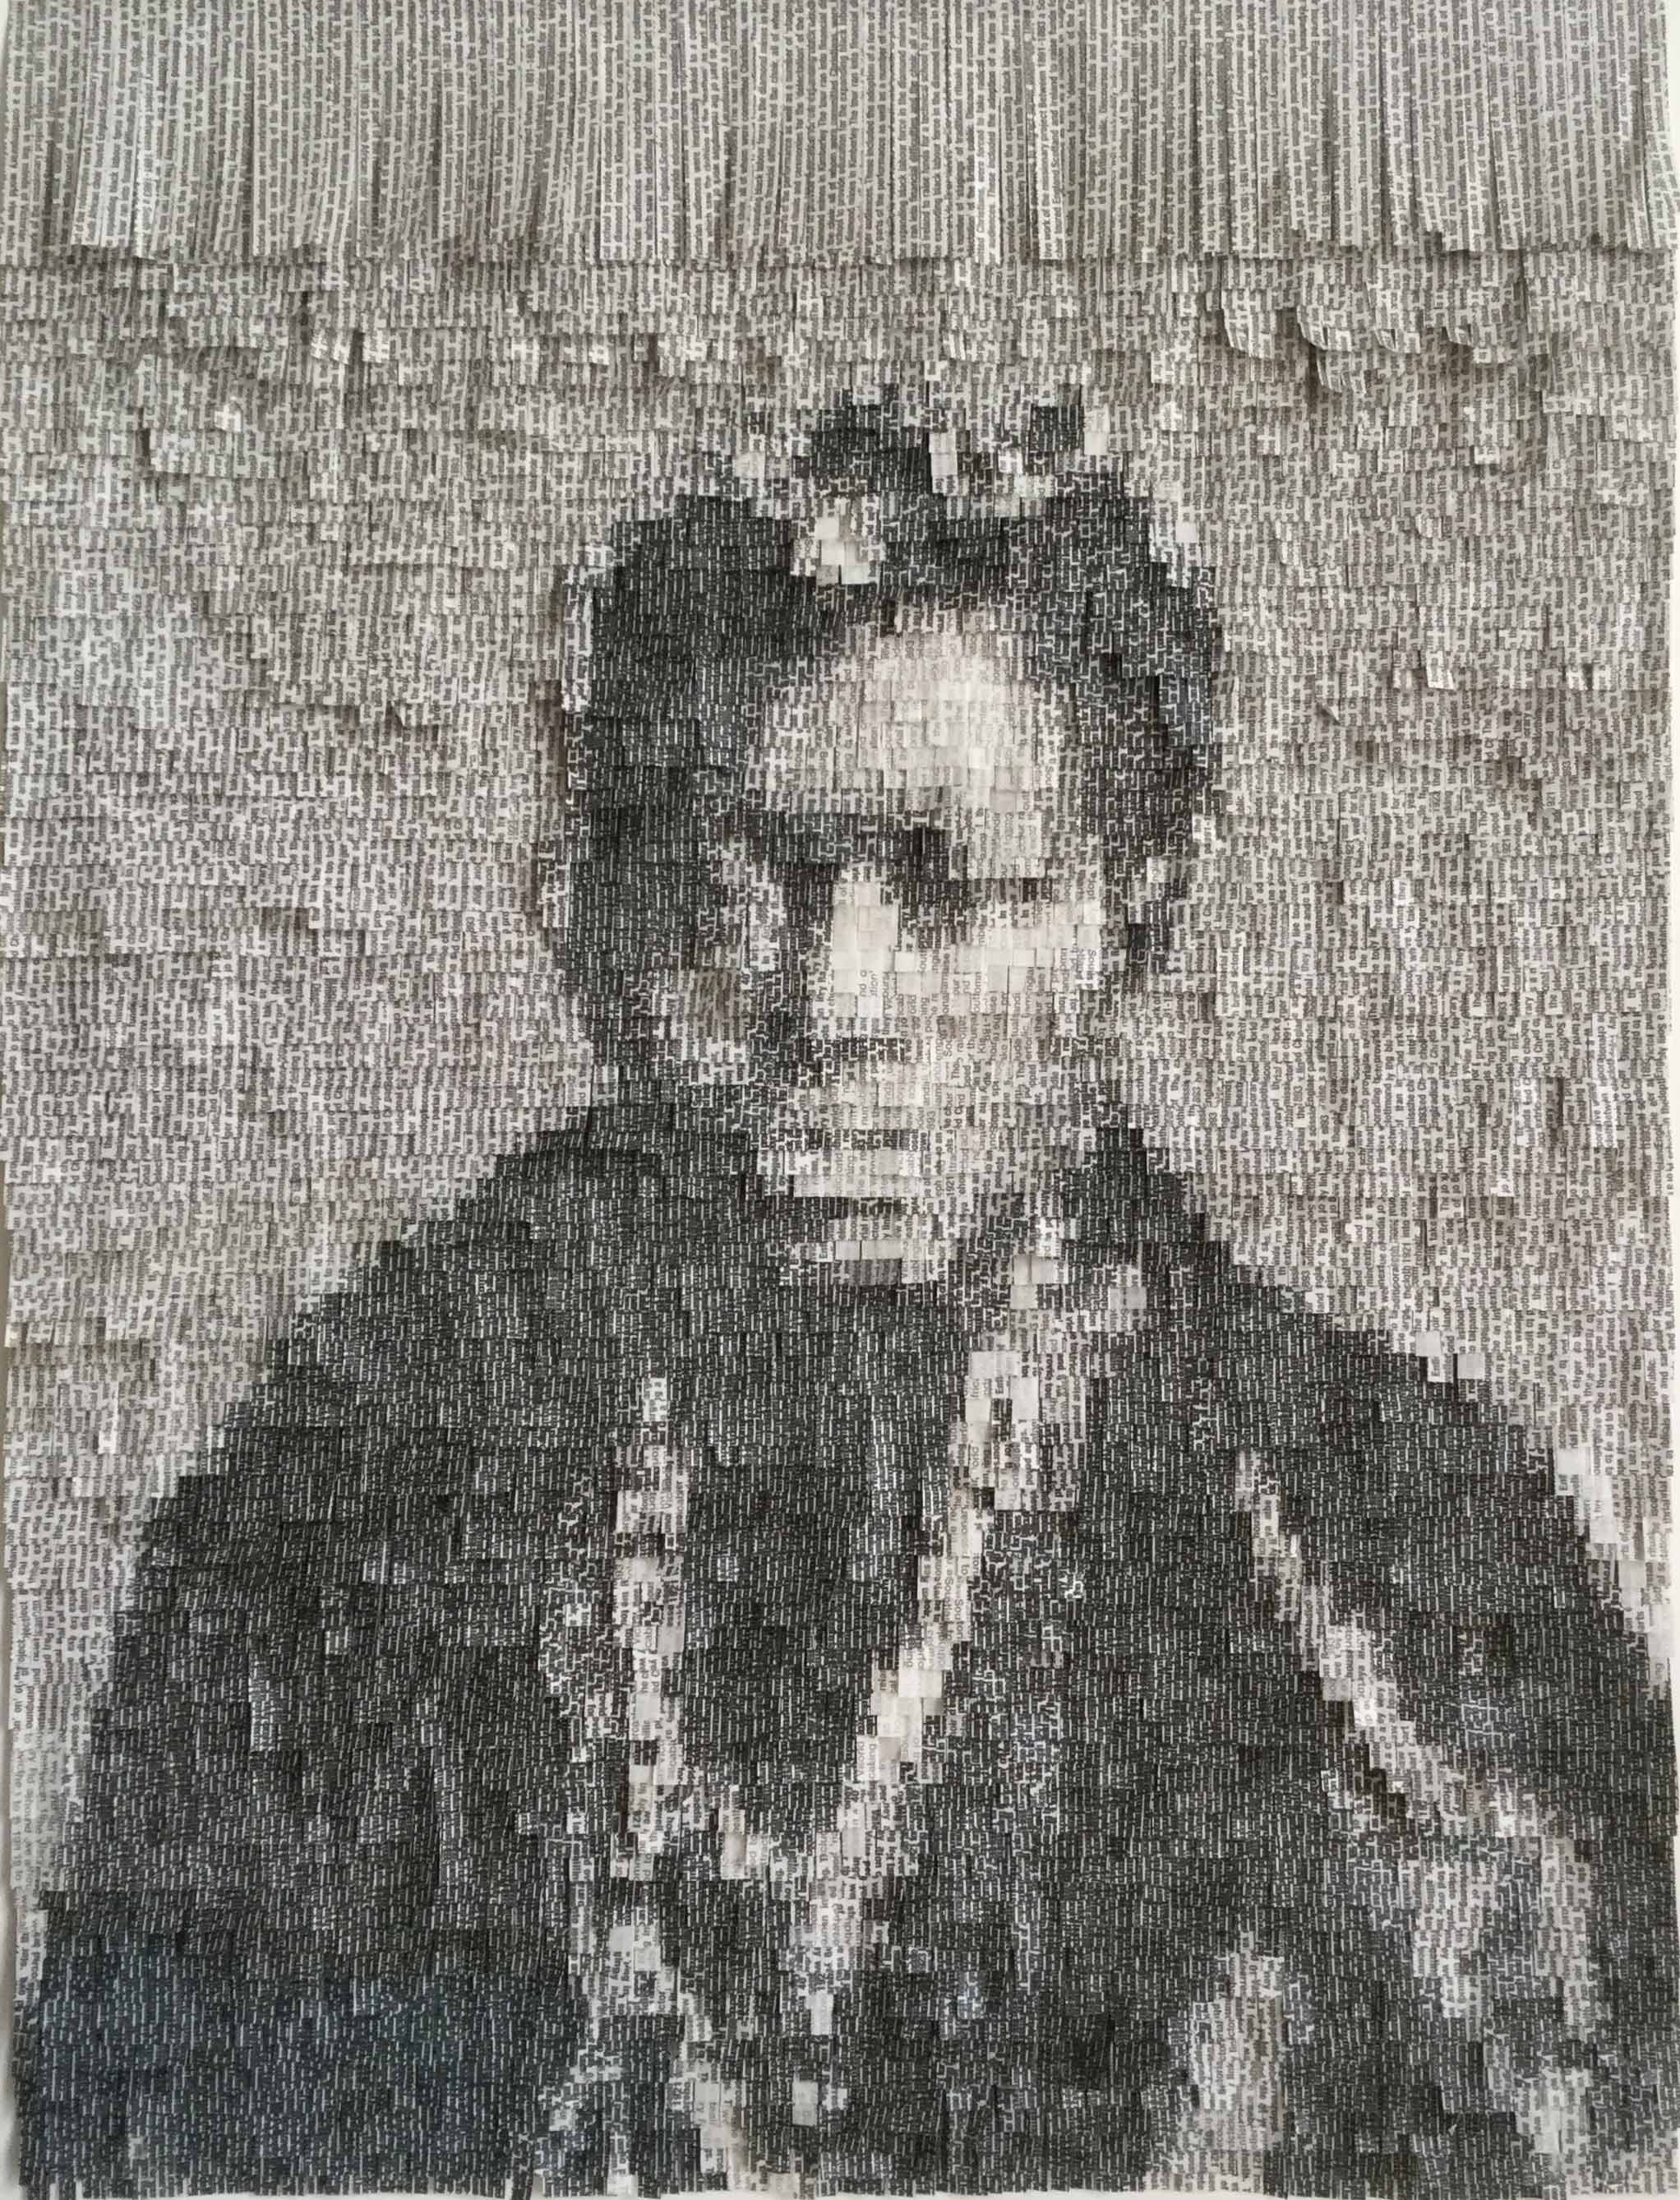 Thousands of Paper Strips Delicately Placed to Create Stunning Portraits by Nathalie Boutté - African Choir